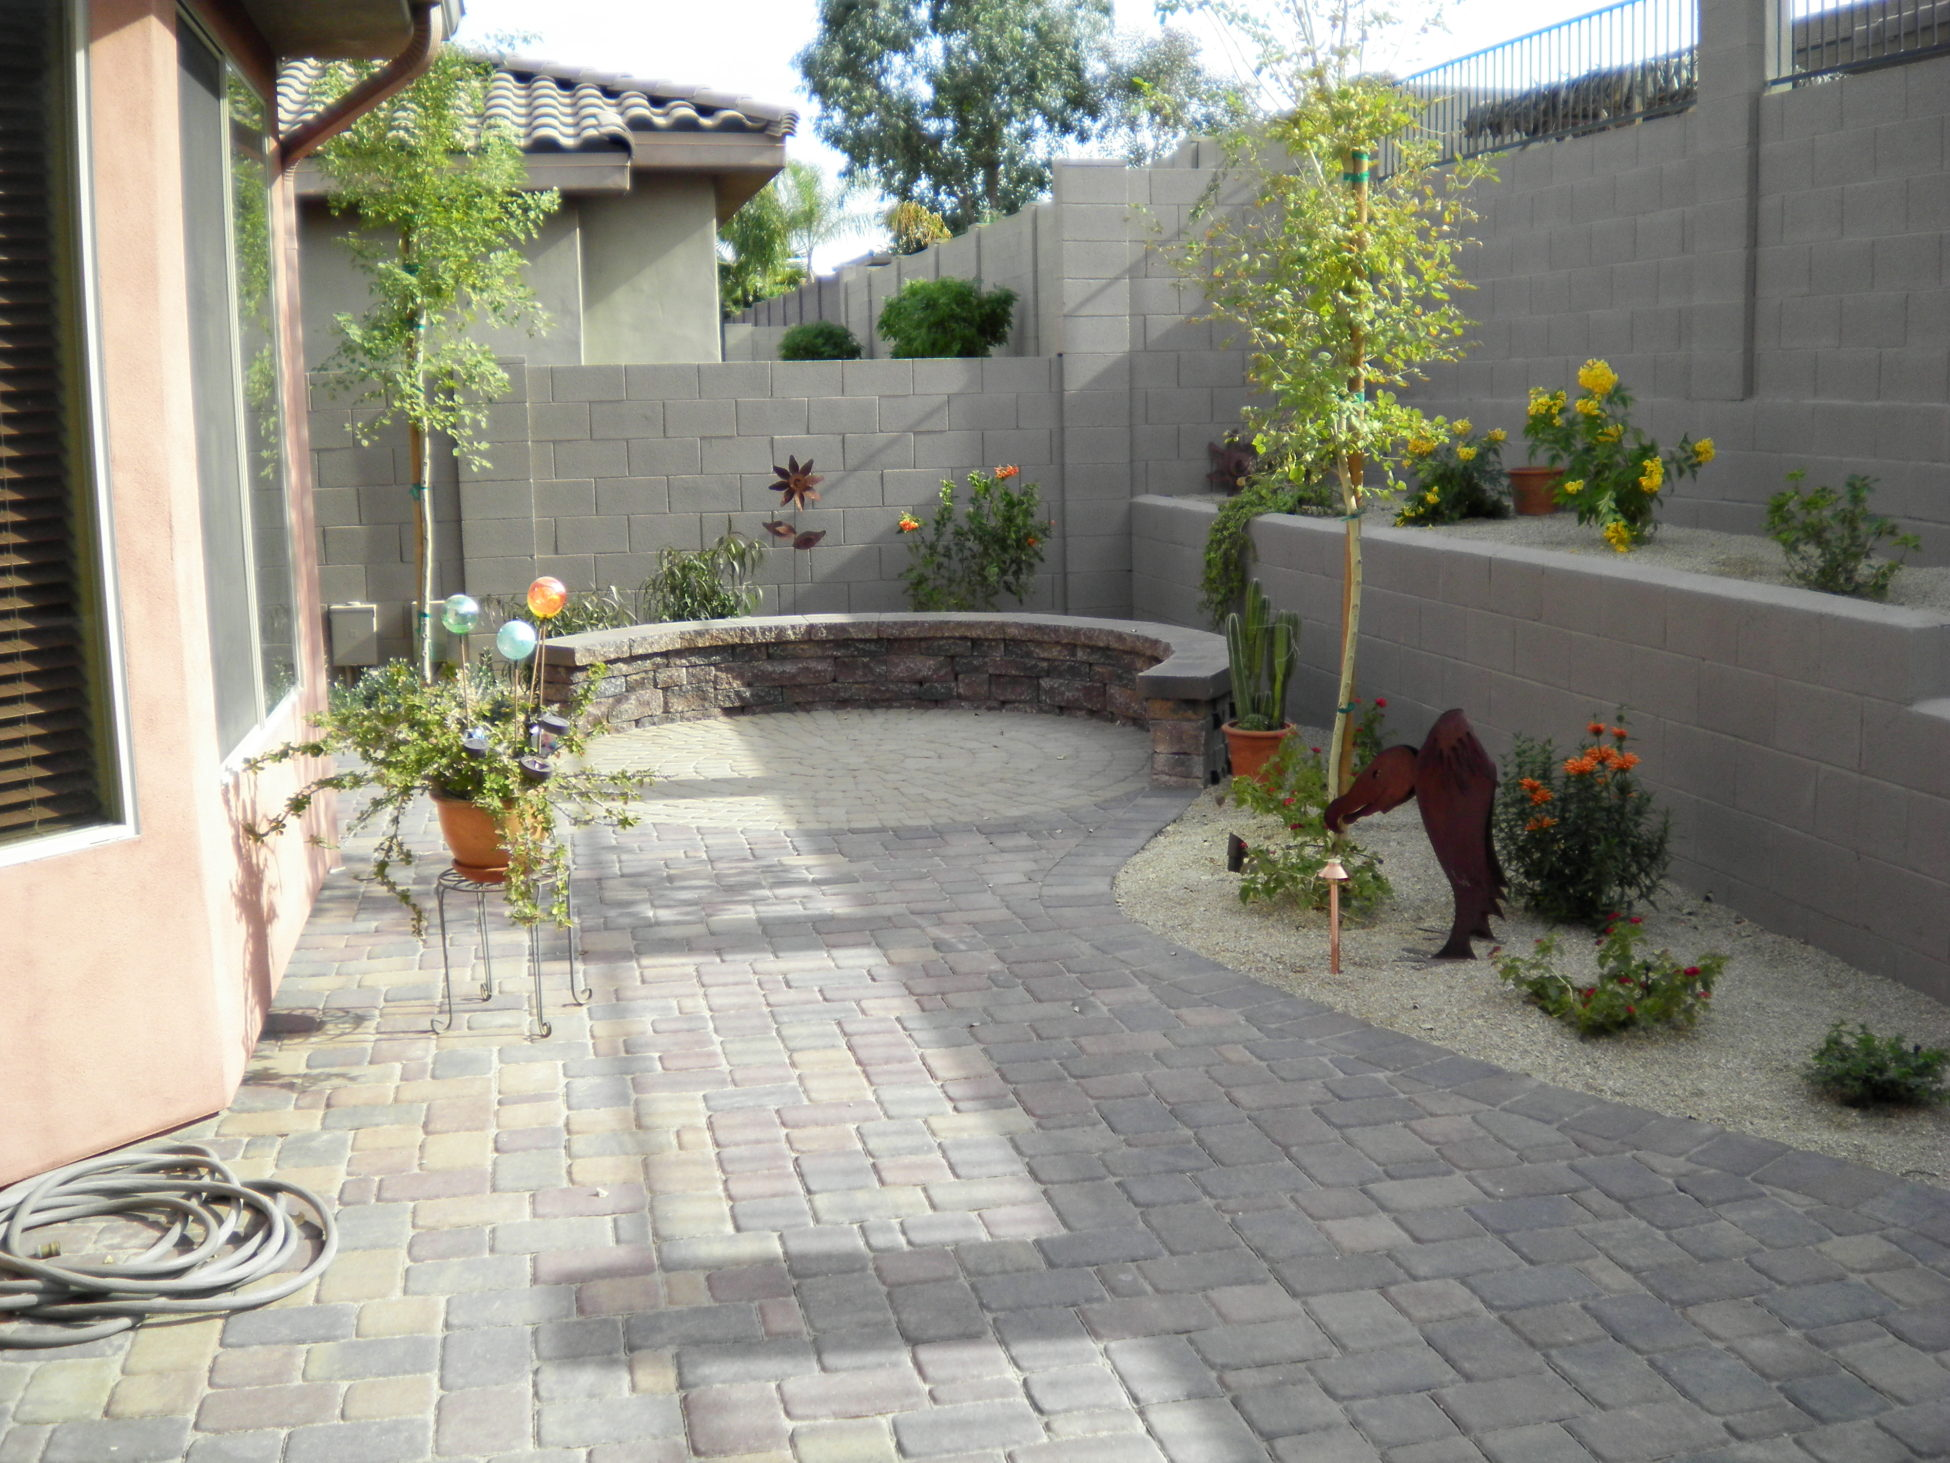 Paver Designs and Paver Ideas for Your Backyard Patios on Paver Patio Designs id=30906